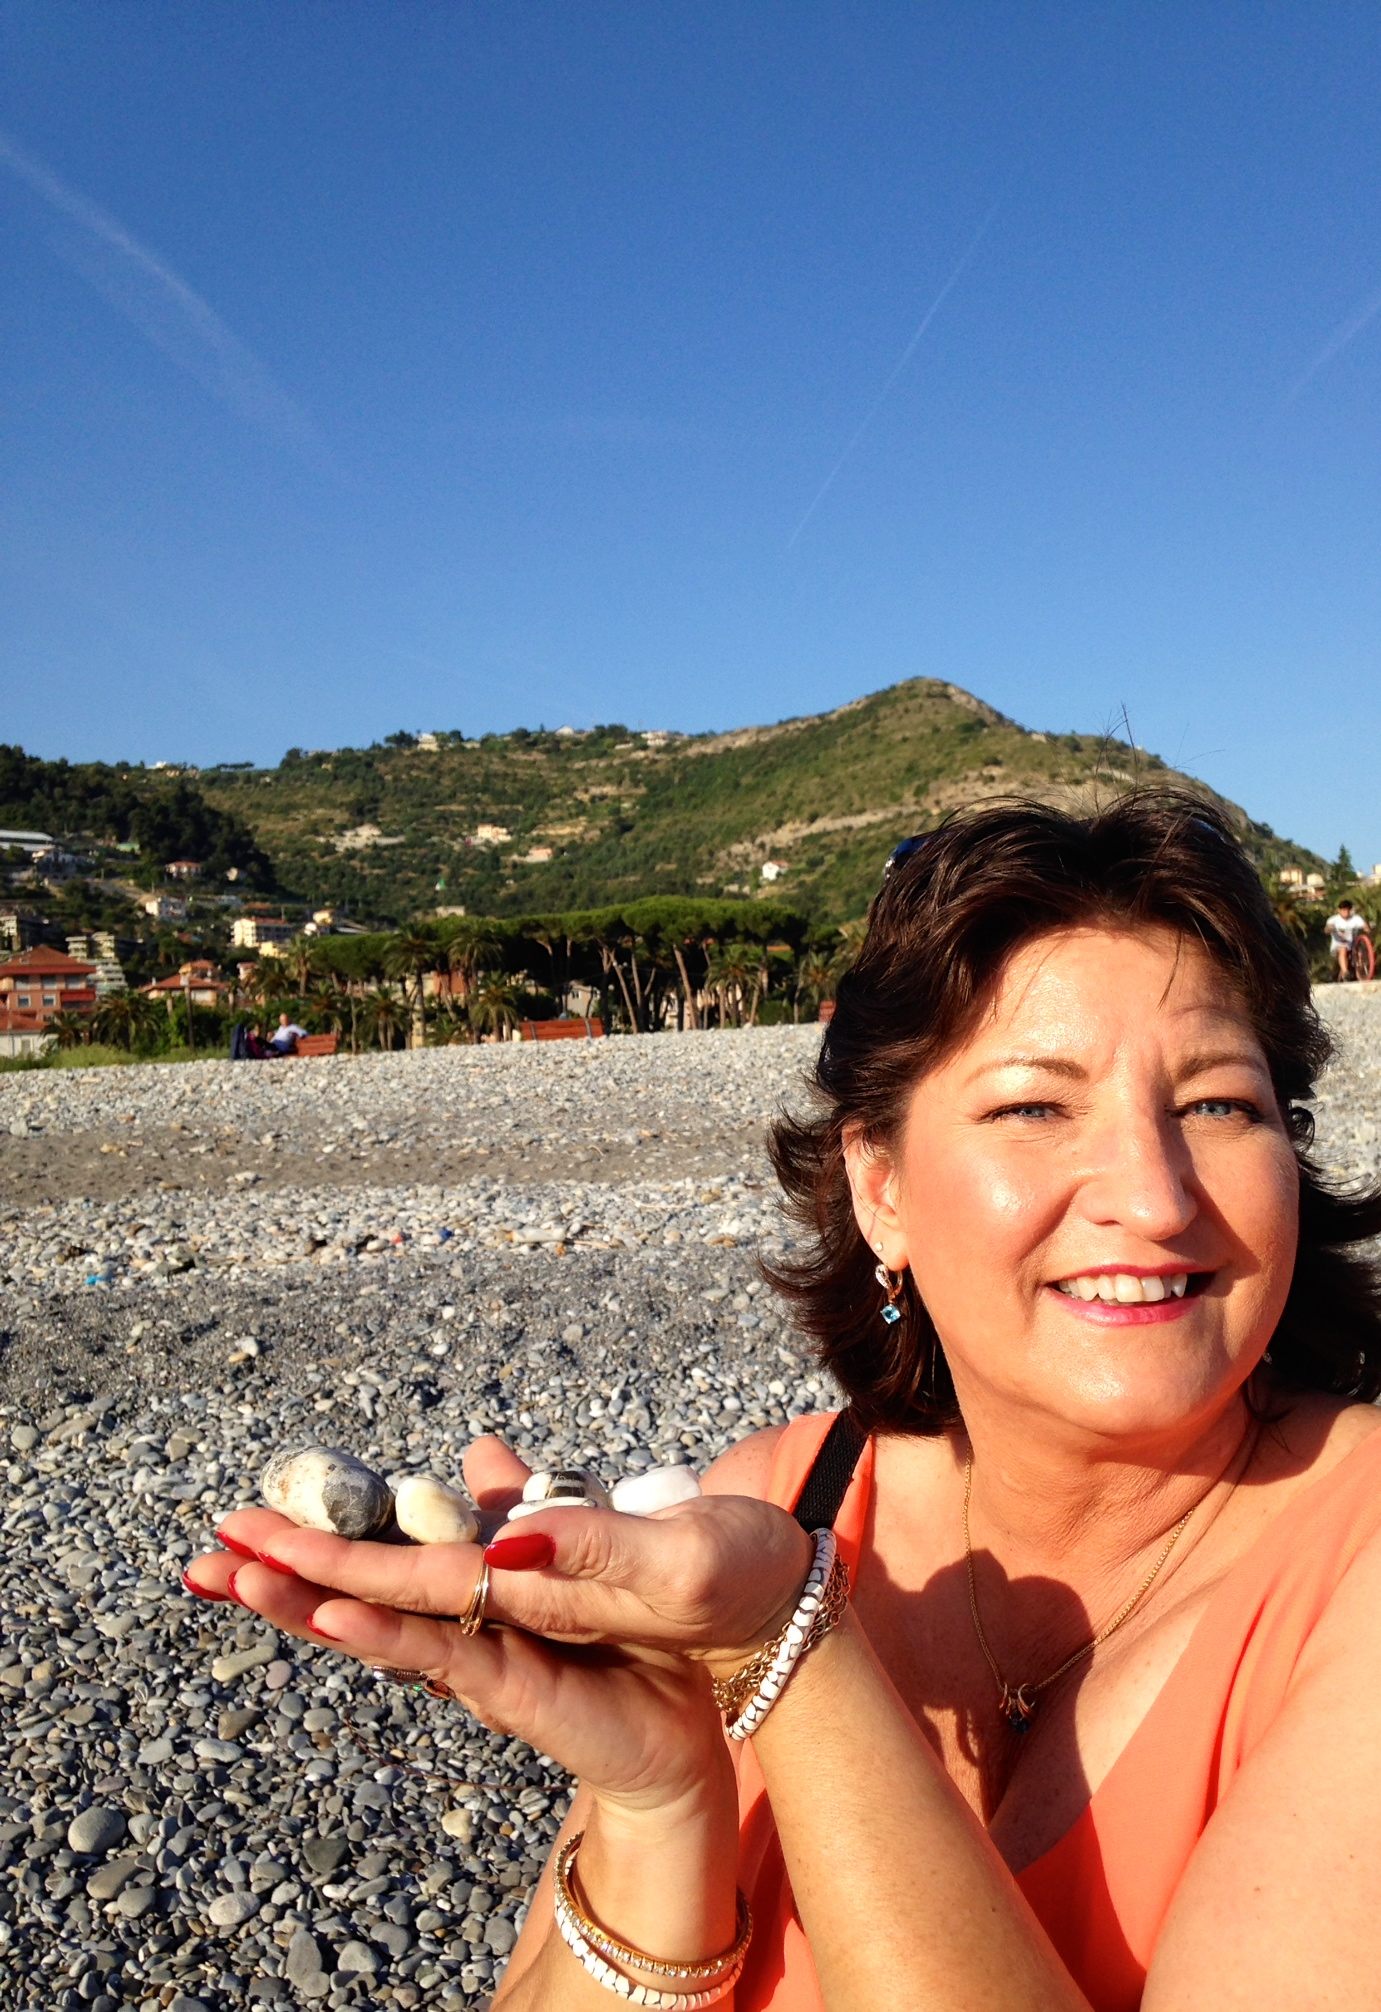 Nance's rock collection in Italy